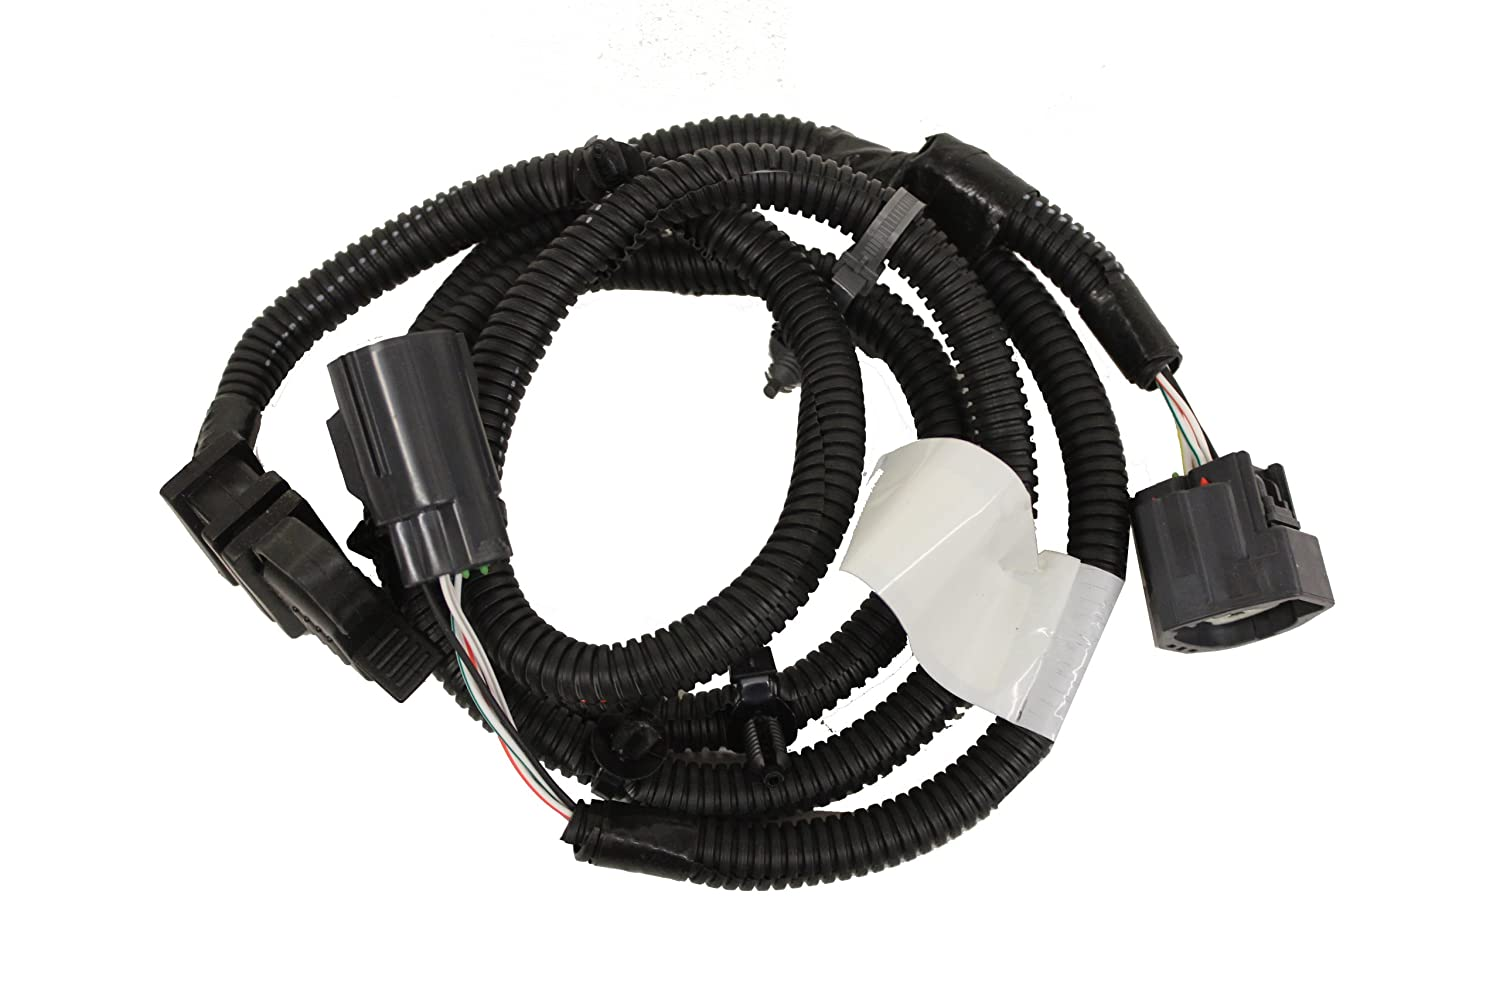 81wJ2Q5LBqL._SL1500_ amazon com genuine jeep accessories 82210213 trailer tow wiring mopar 68321424aa wire harness kit at bakdesigns.co